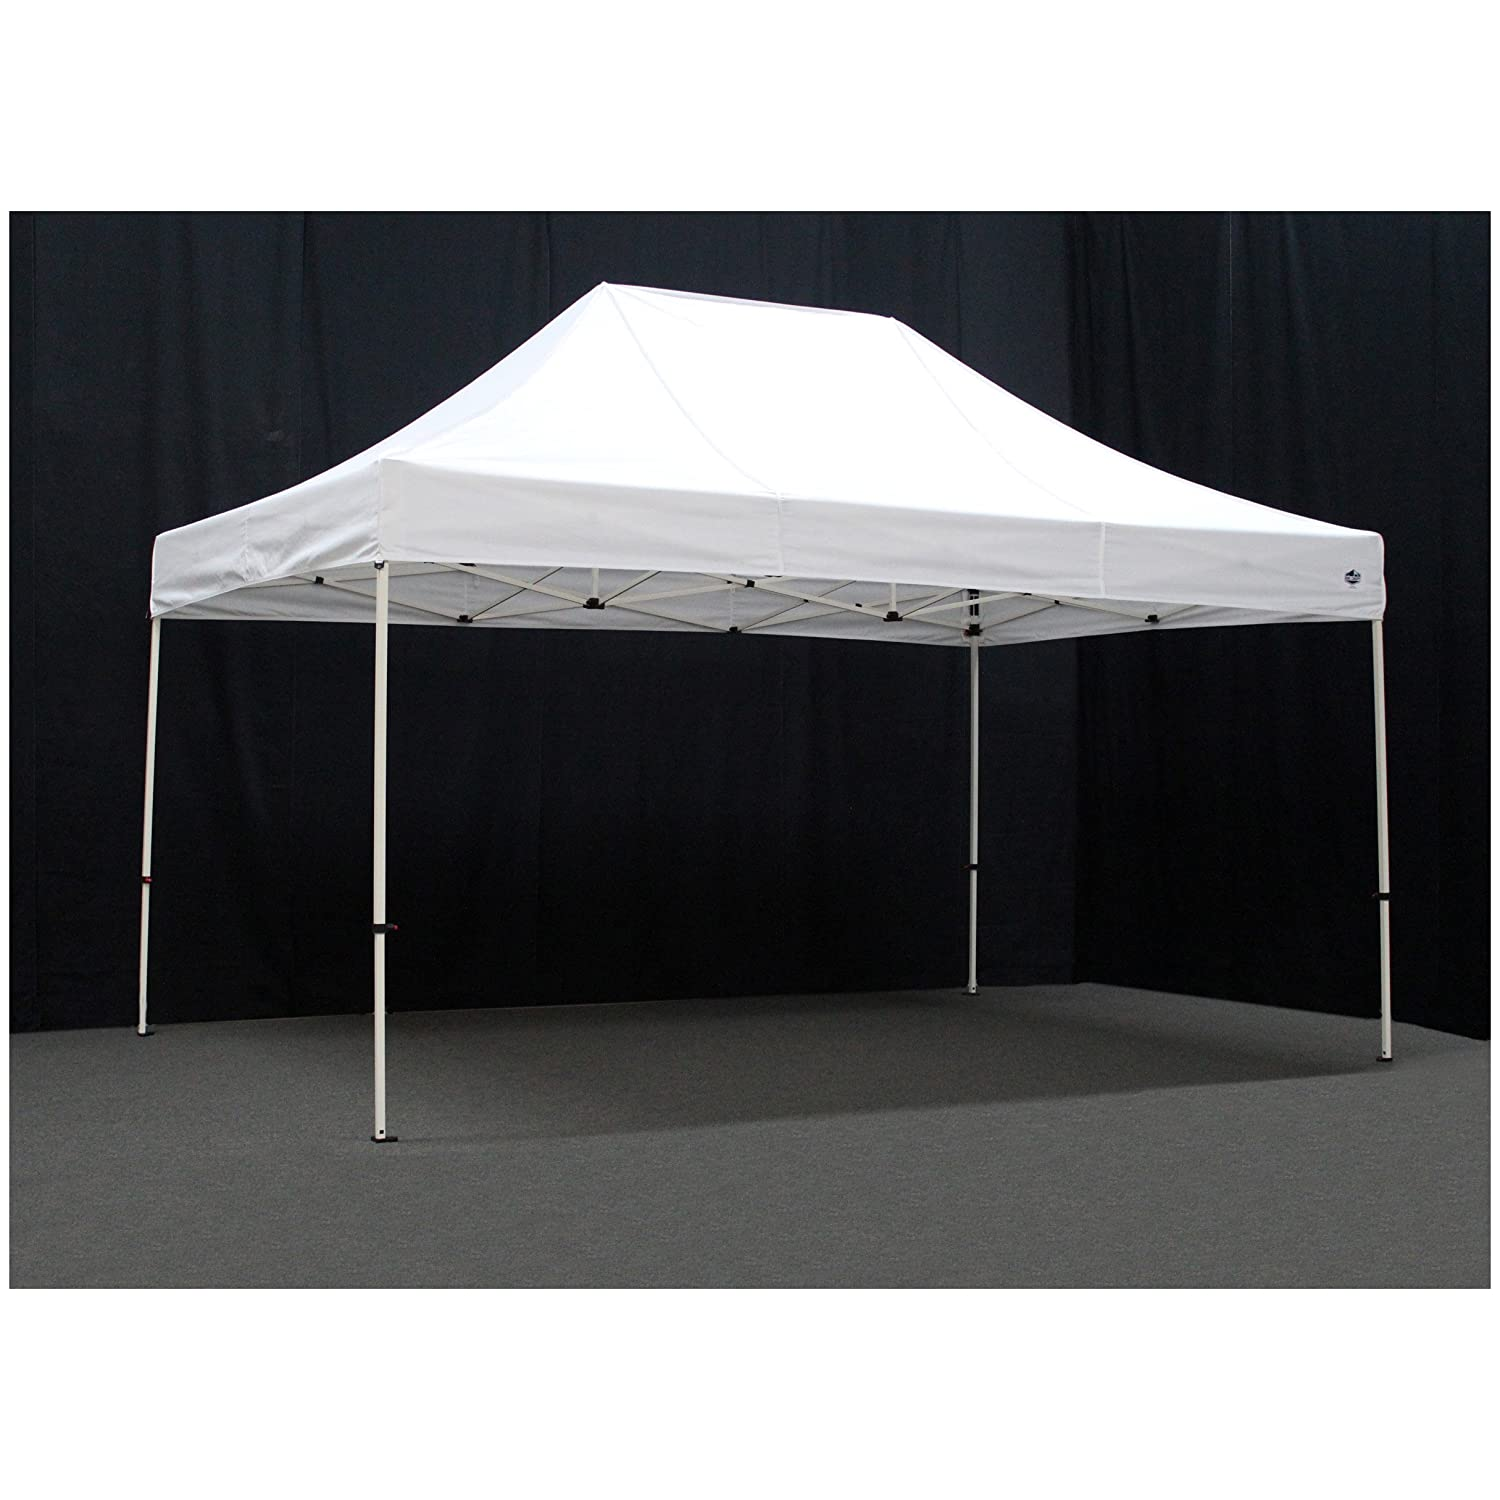 Amazon.com  King Canopy FSSHST15WH 10-Feet by 15-Feet Festival Steel Instant Canopy White  Sports Fan Canopies  Garden u0026 Outdoor  sc 1 st  Amazon.com & Amazon.com : King Canopy FSSHST15WH 10-Feet by 15-Feet Festival ...